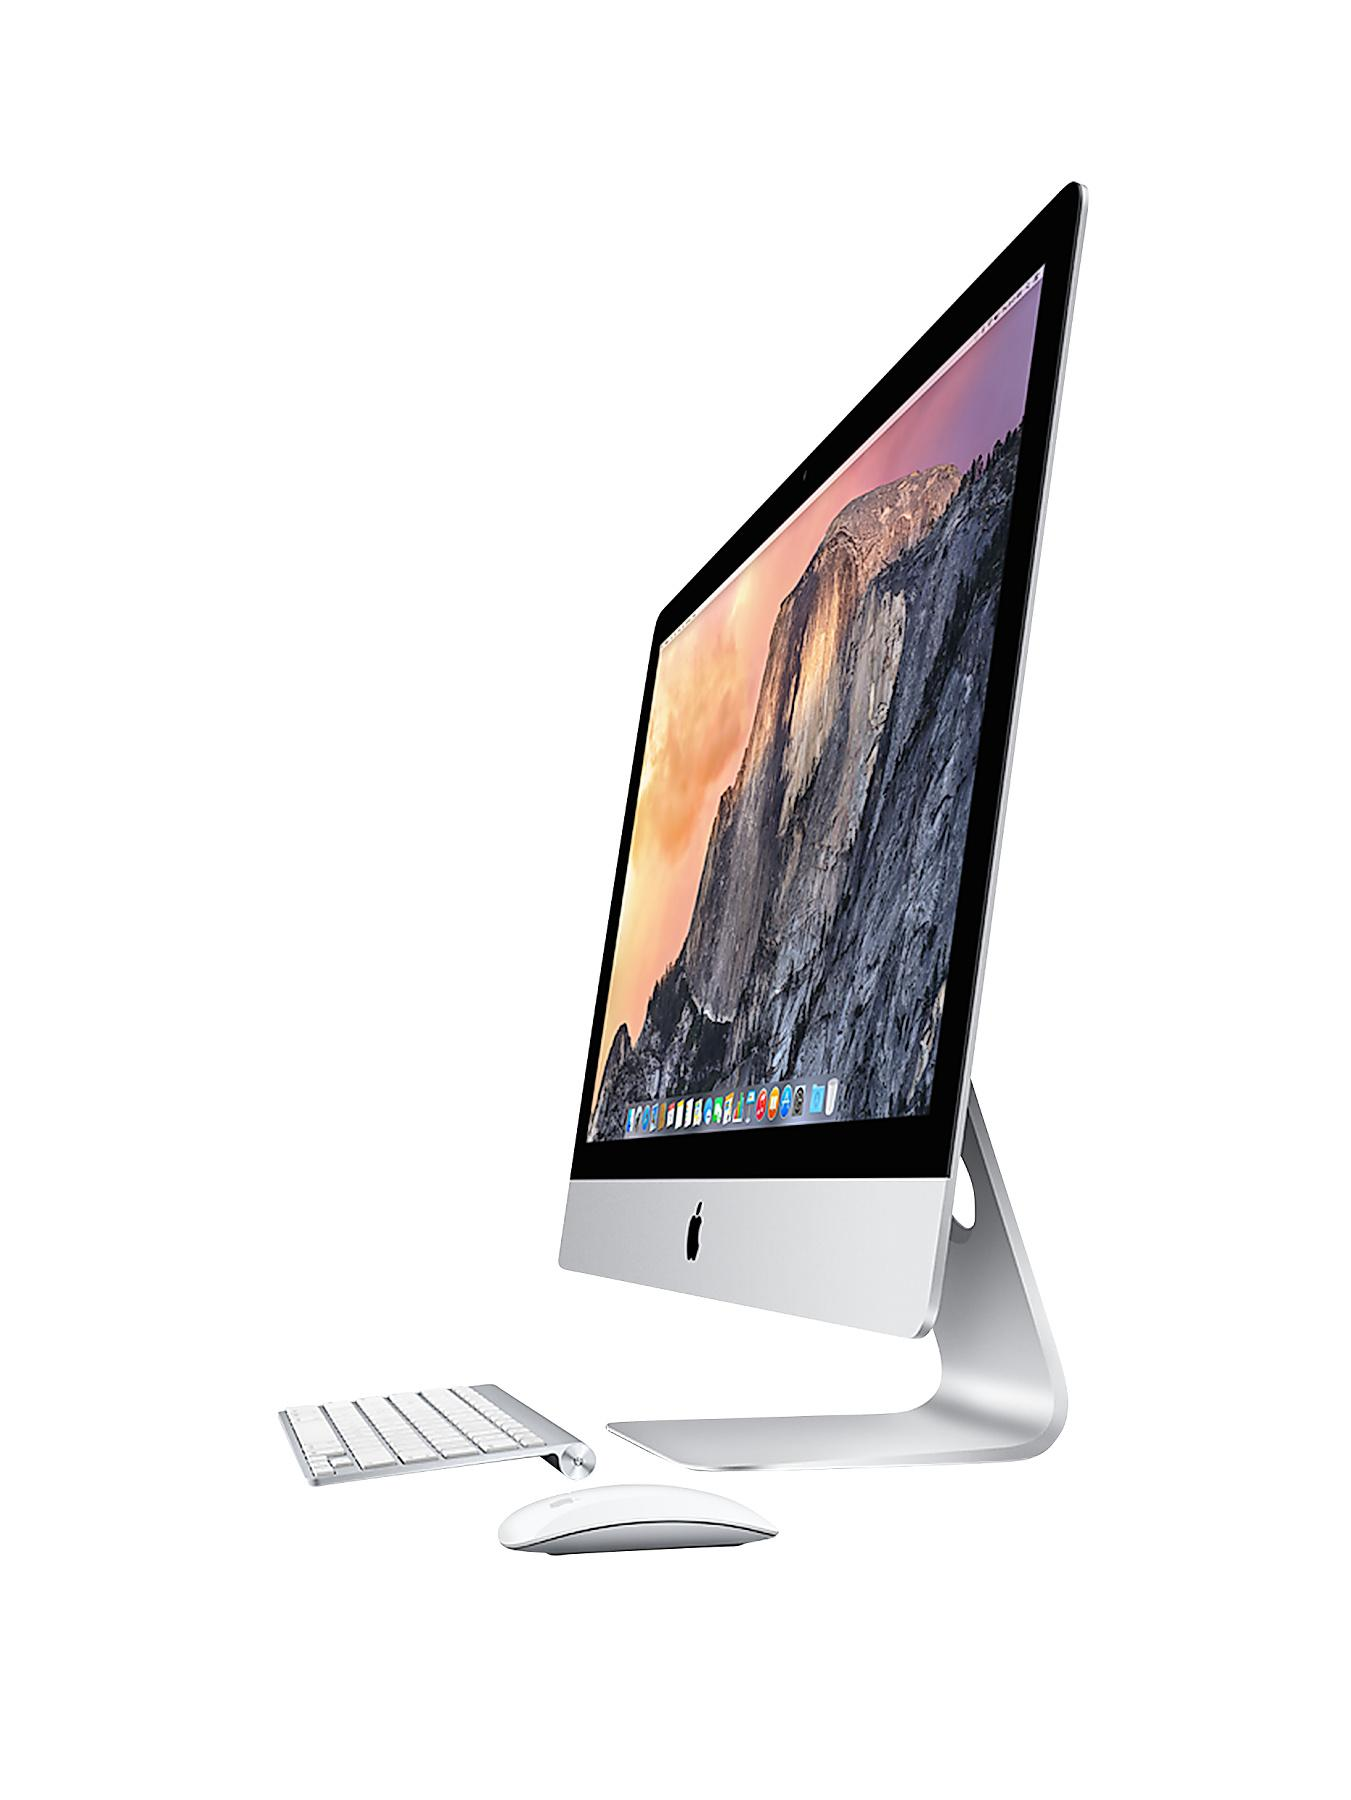 iMac ME087B/A Intel Core i5 Processor, 8Gb RAM, 1Tb Hard Drive, 21.5 inch and Optional Microsoft Office 365 Home Premium - Silver